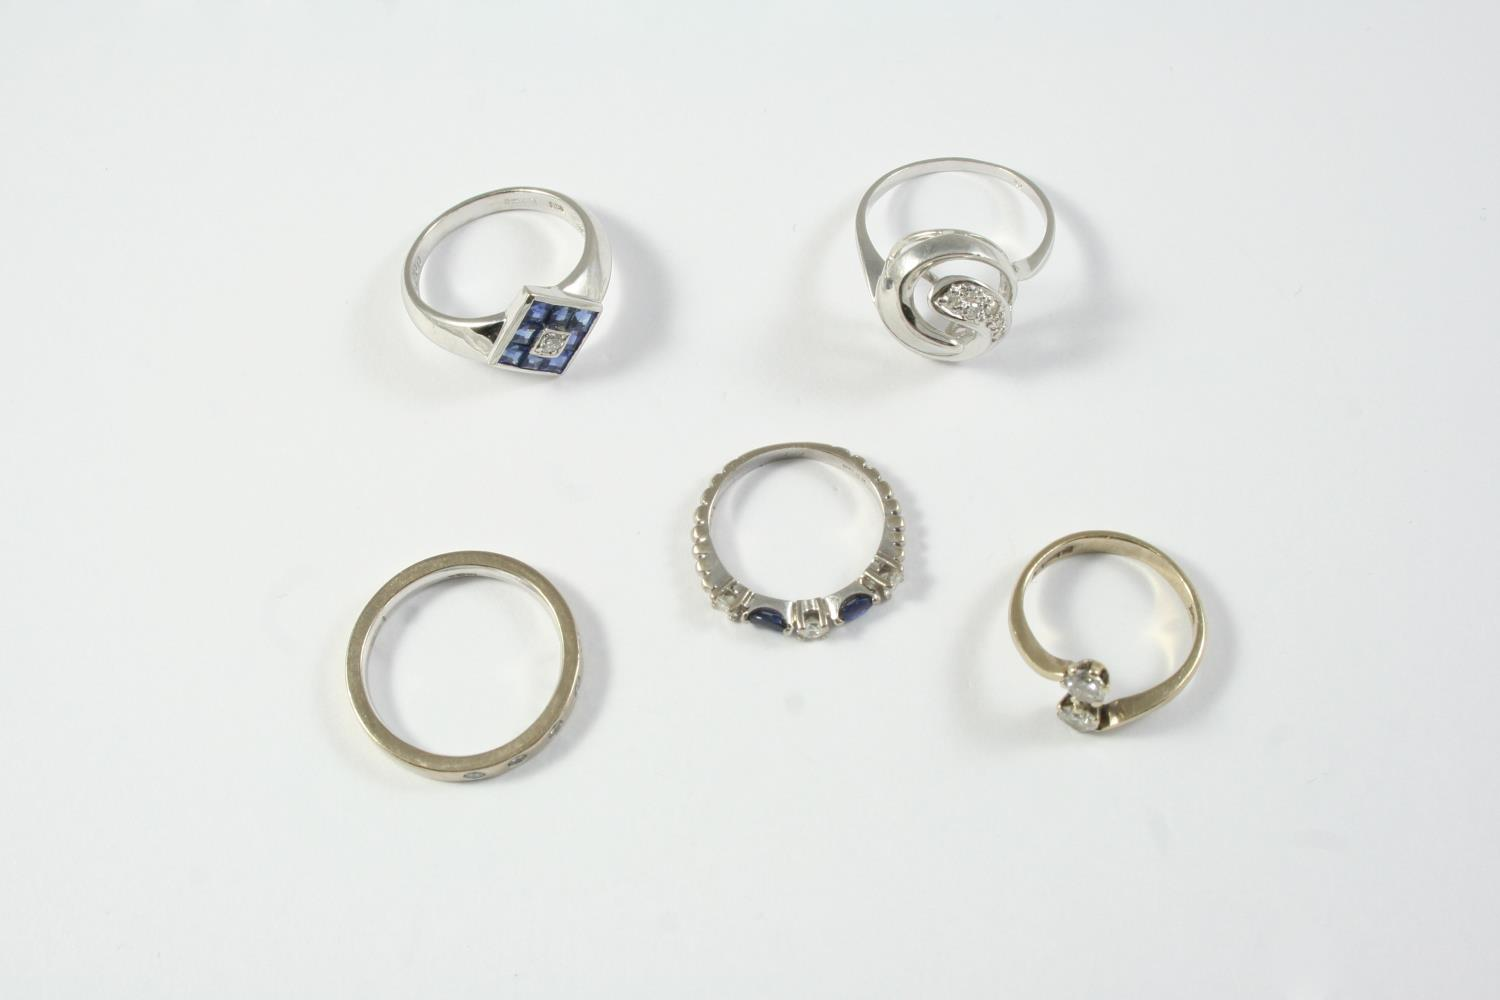 FIVE ASSORTED GOLD AND GEM SET RINGS including a diamond cross-over ring, set with two circular-